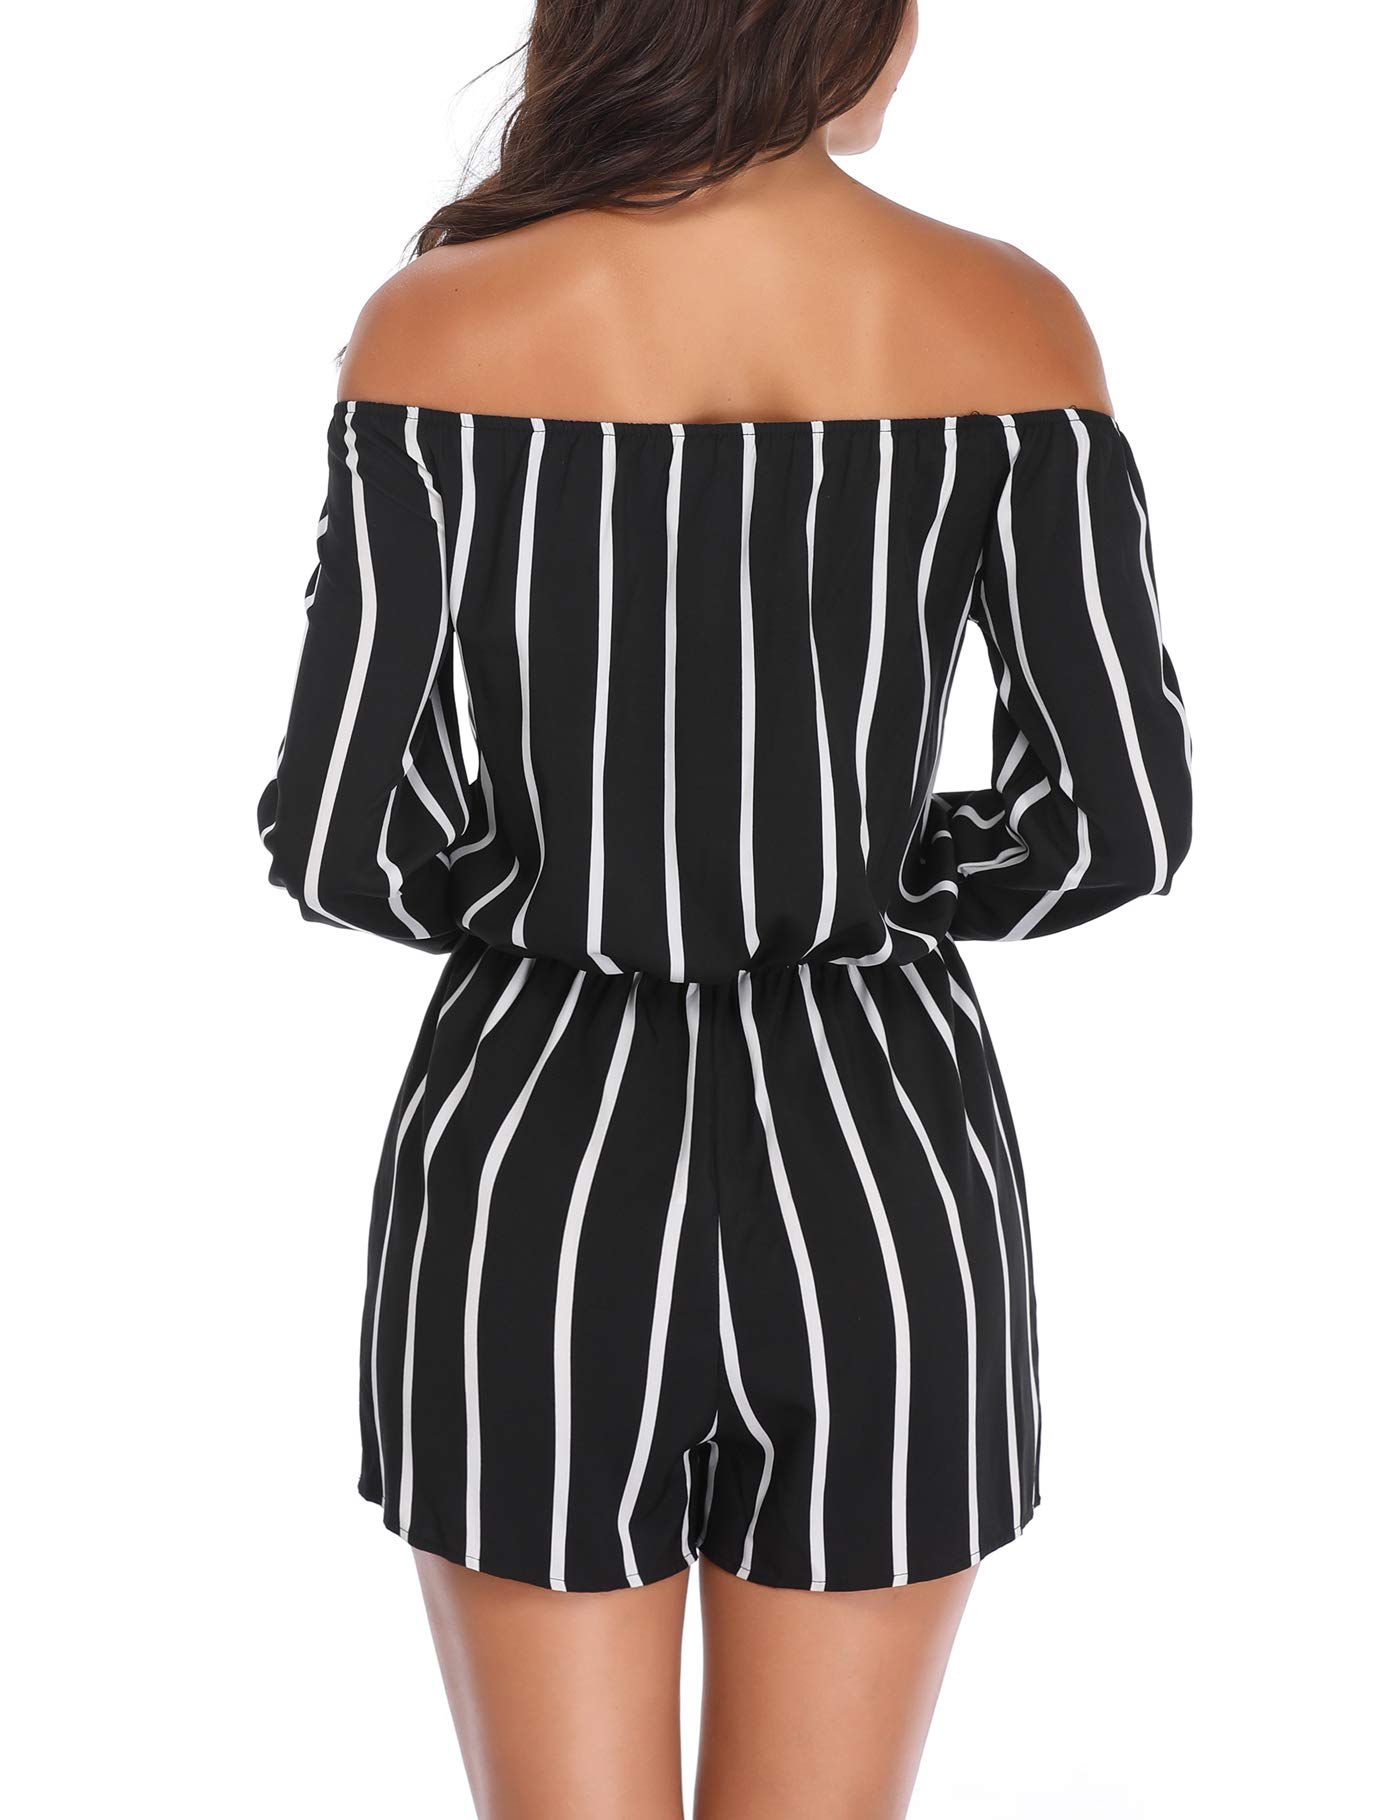 MISS MOLY Women Rompers and Jumpsuits Off The Shoulder Strapless Boat Neck Shorts with Belt by MISS MOLY (Image #6)